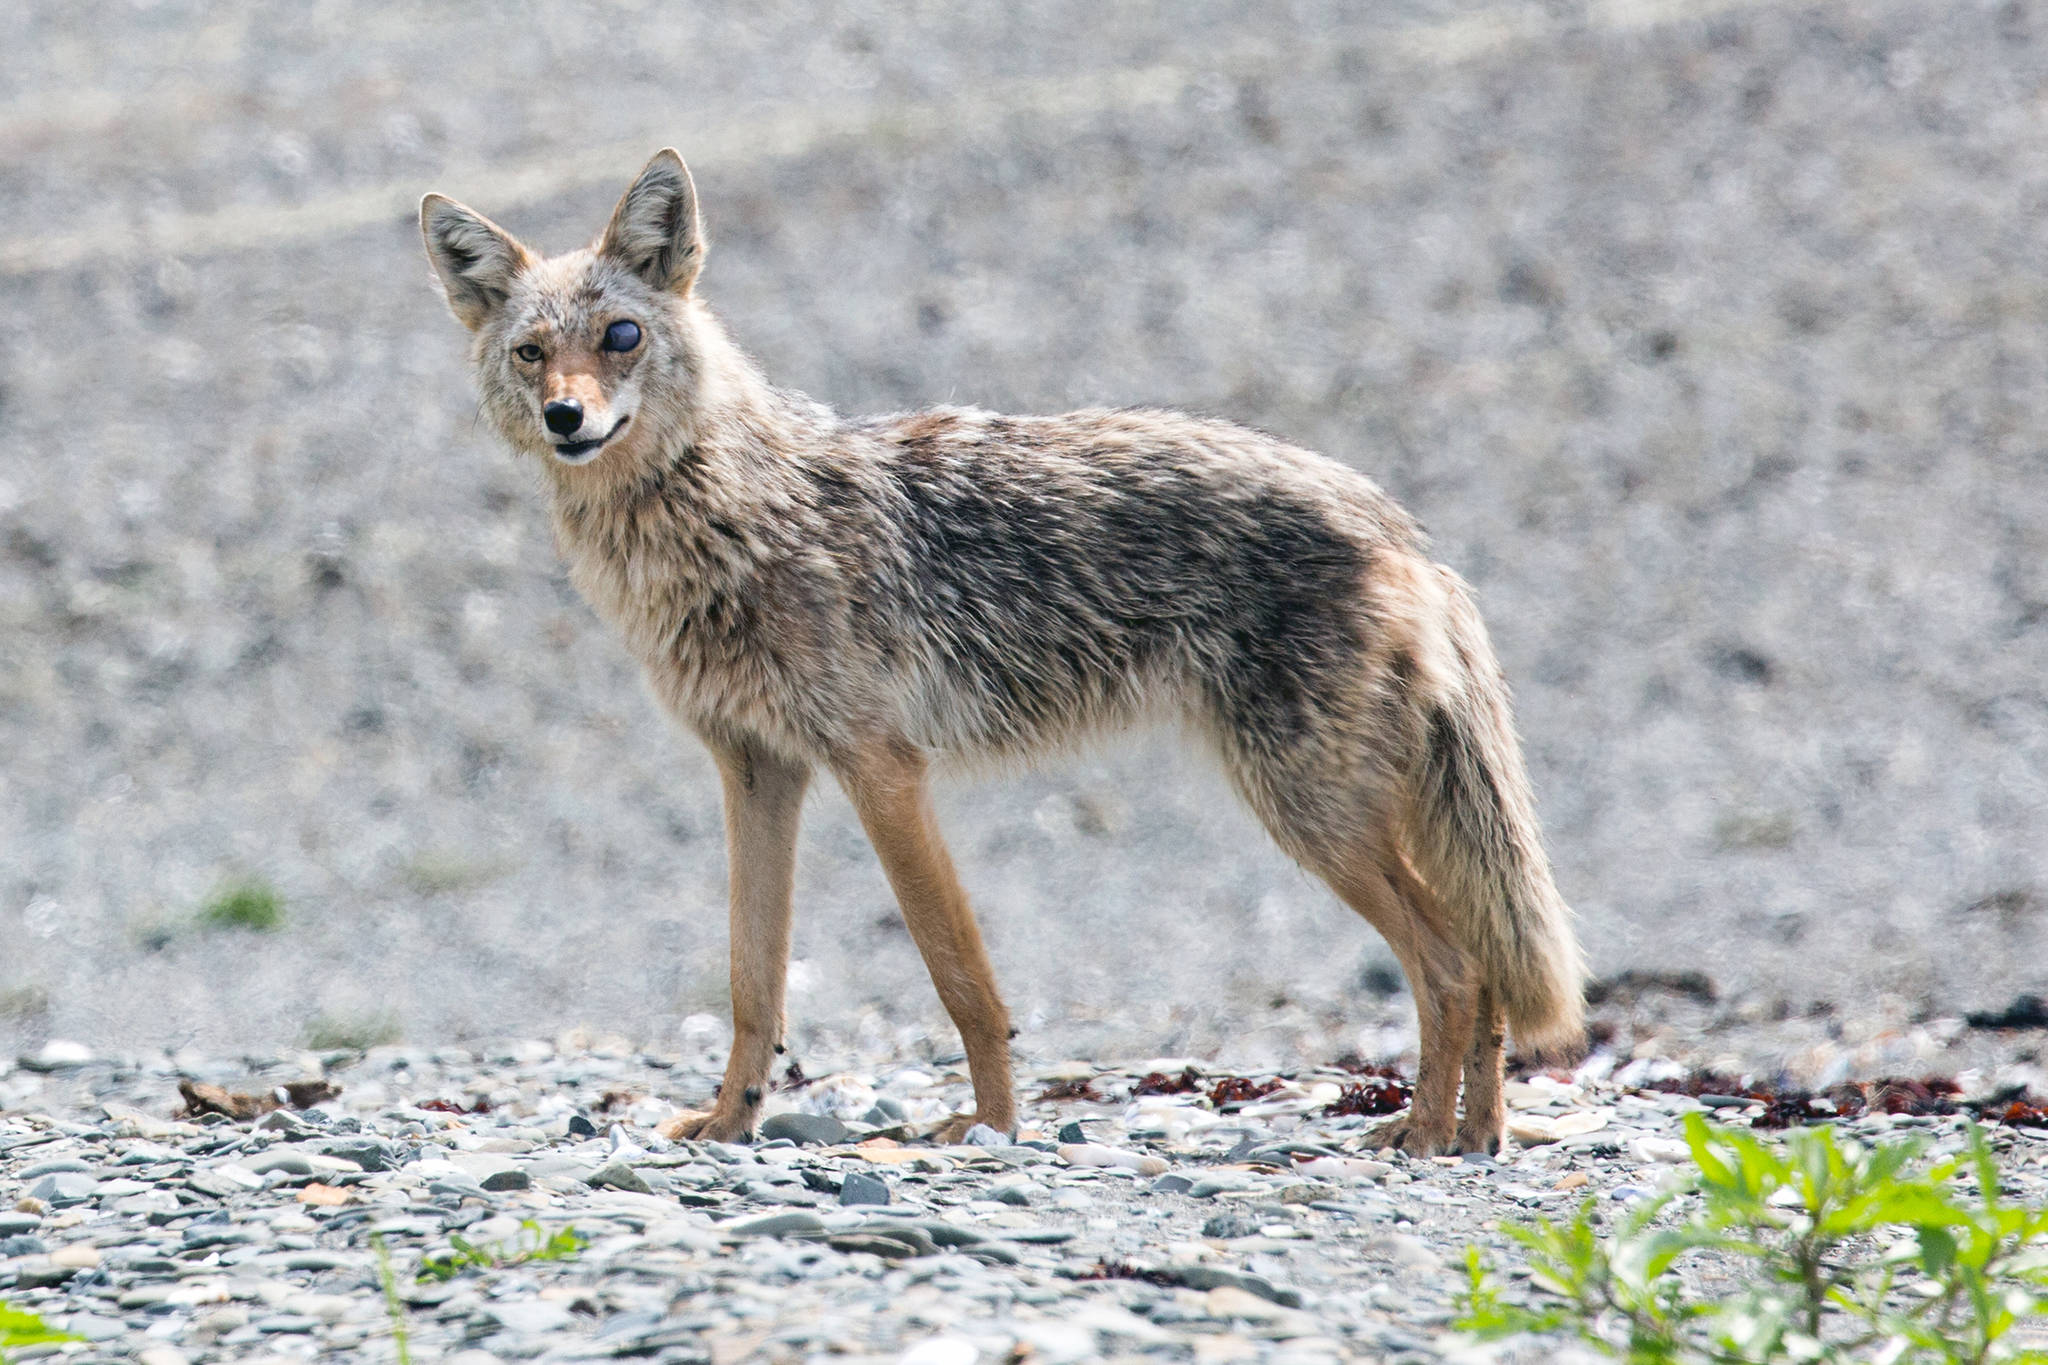 A coyote is seen on a beach near Excursion Inlet on June 8, 2019. The eye trauma may have been the result of a tangle with a porcupine, the photographer guessed. (Courtesy Photo | Jack Beedle)